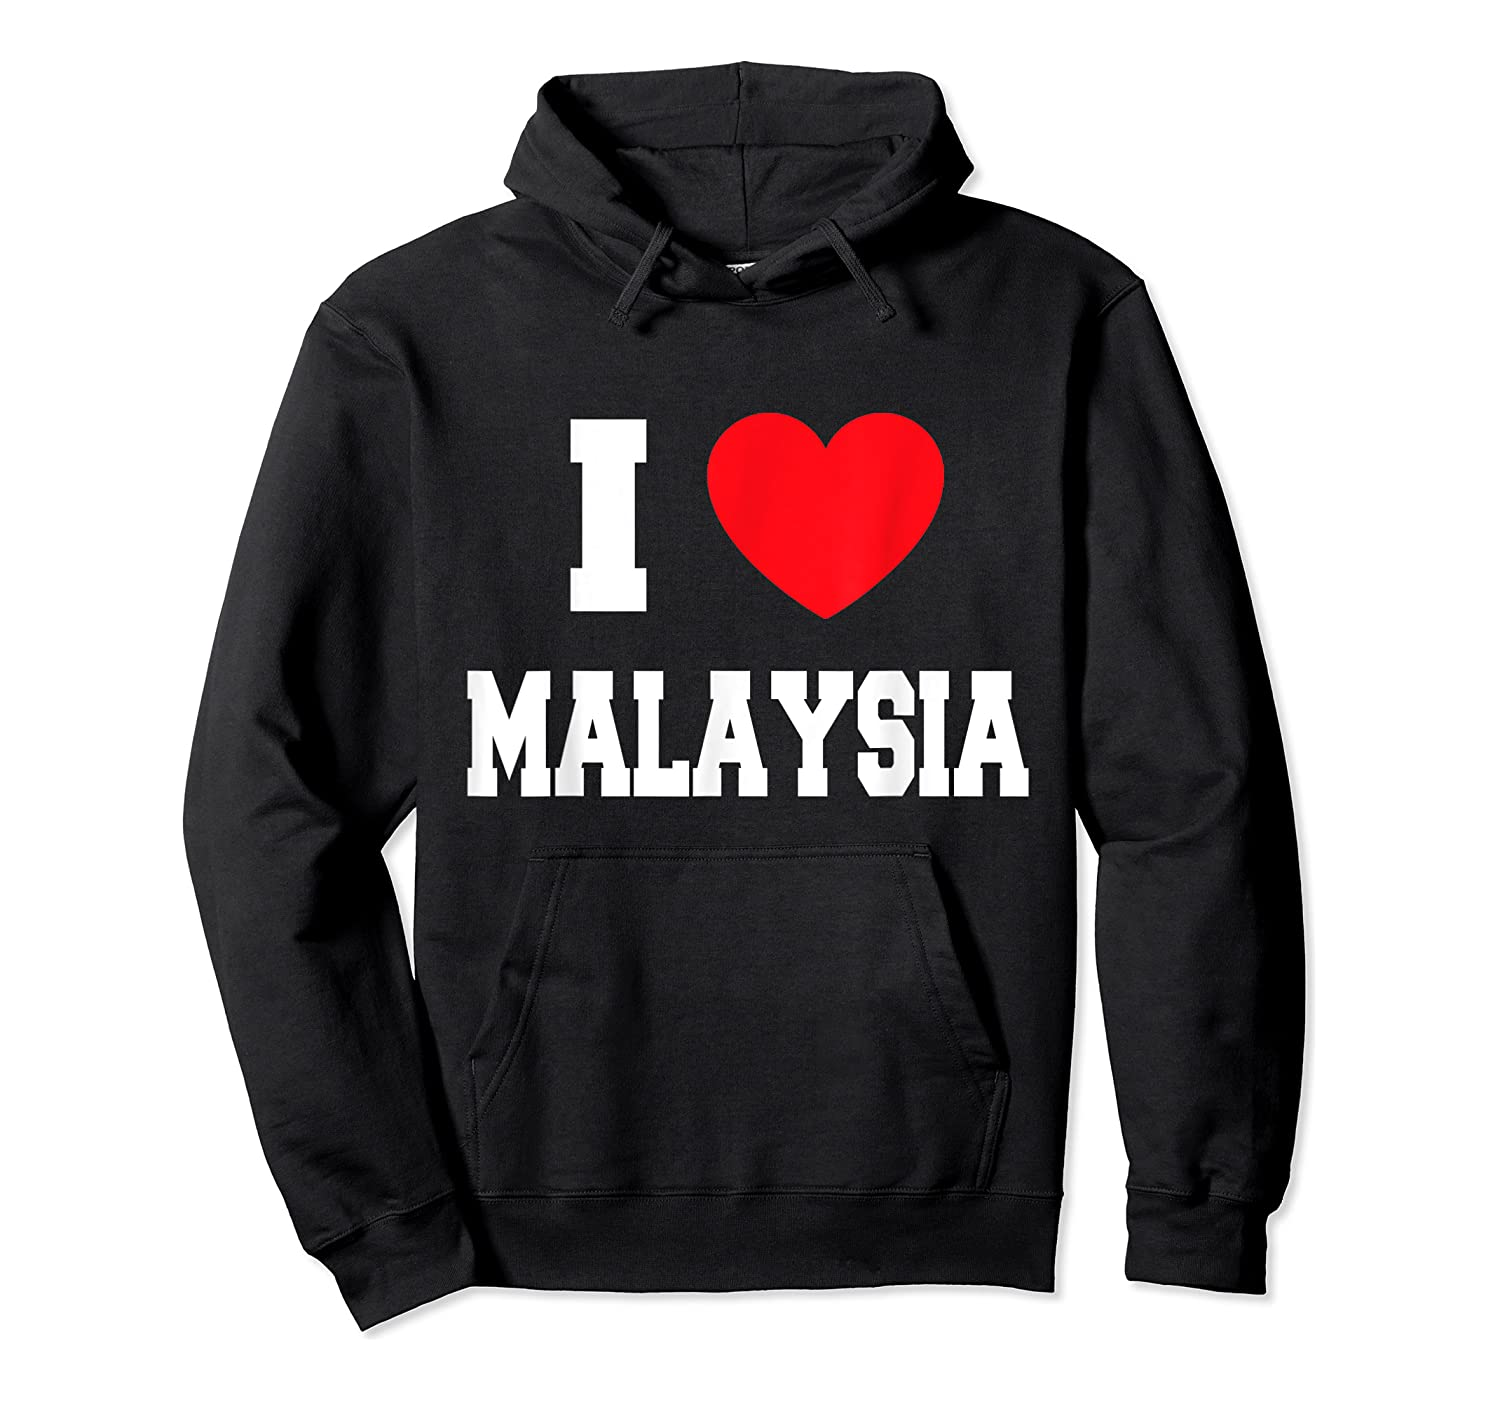 Love Malaysia Shirts Unisex Pullover Hoodie